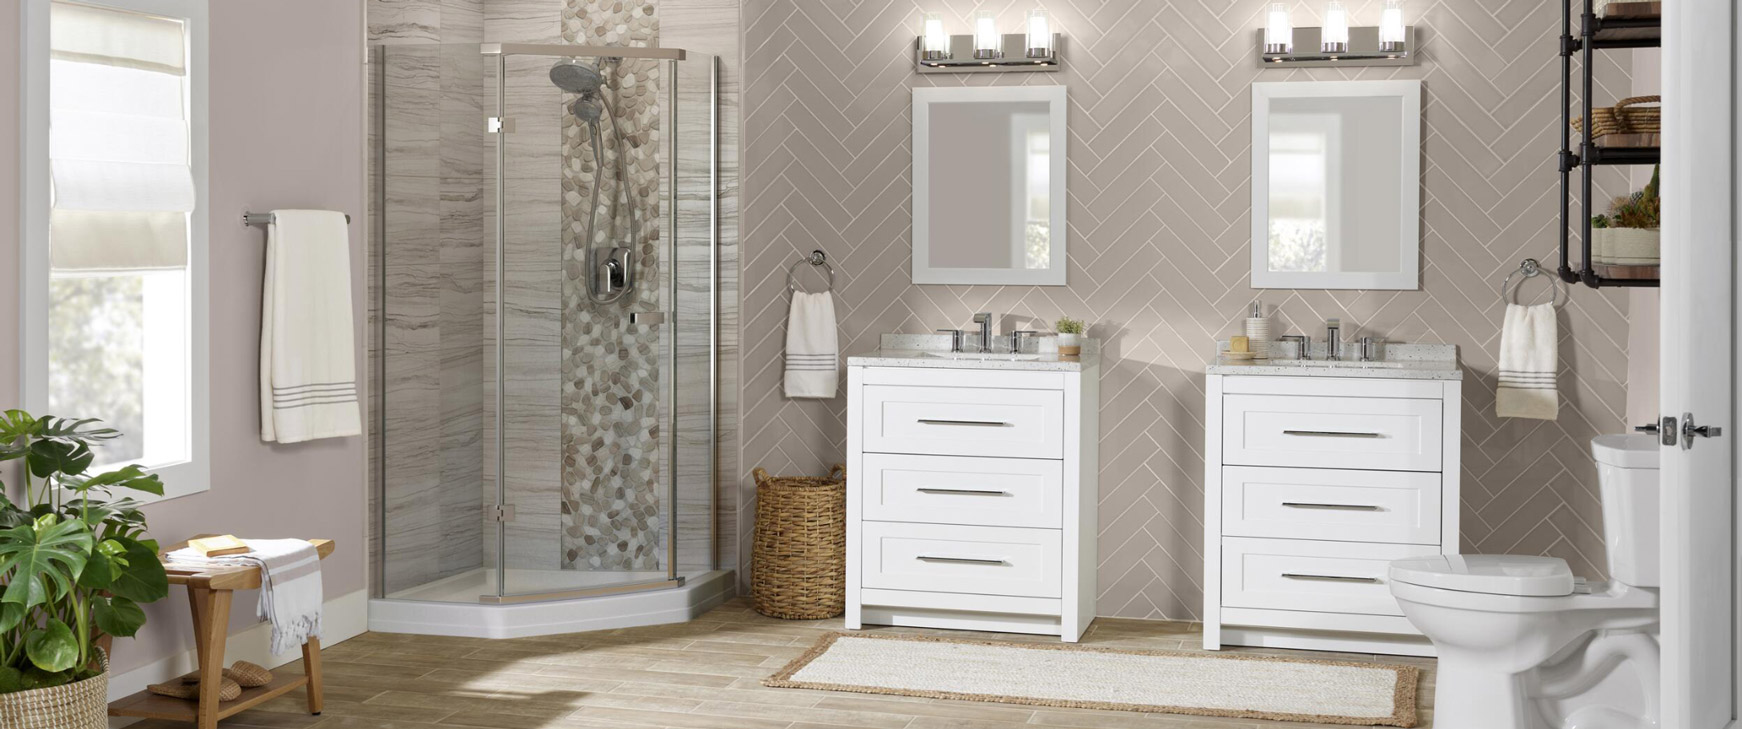 Explore bathroom designs to find the right look for you